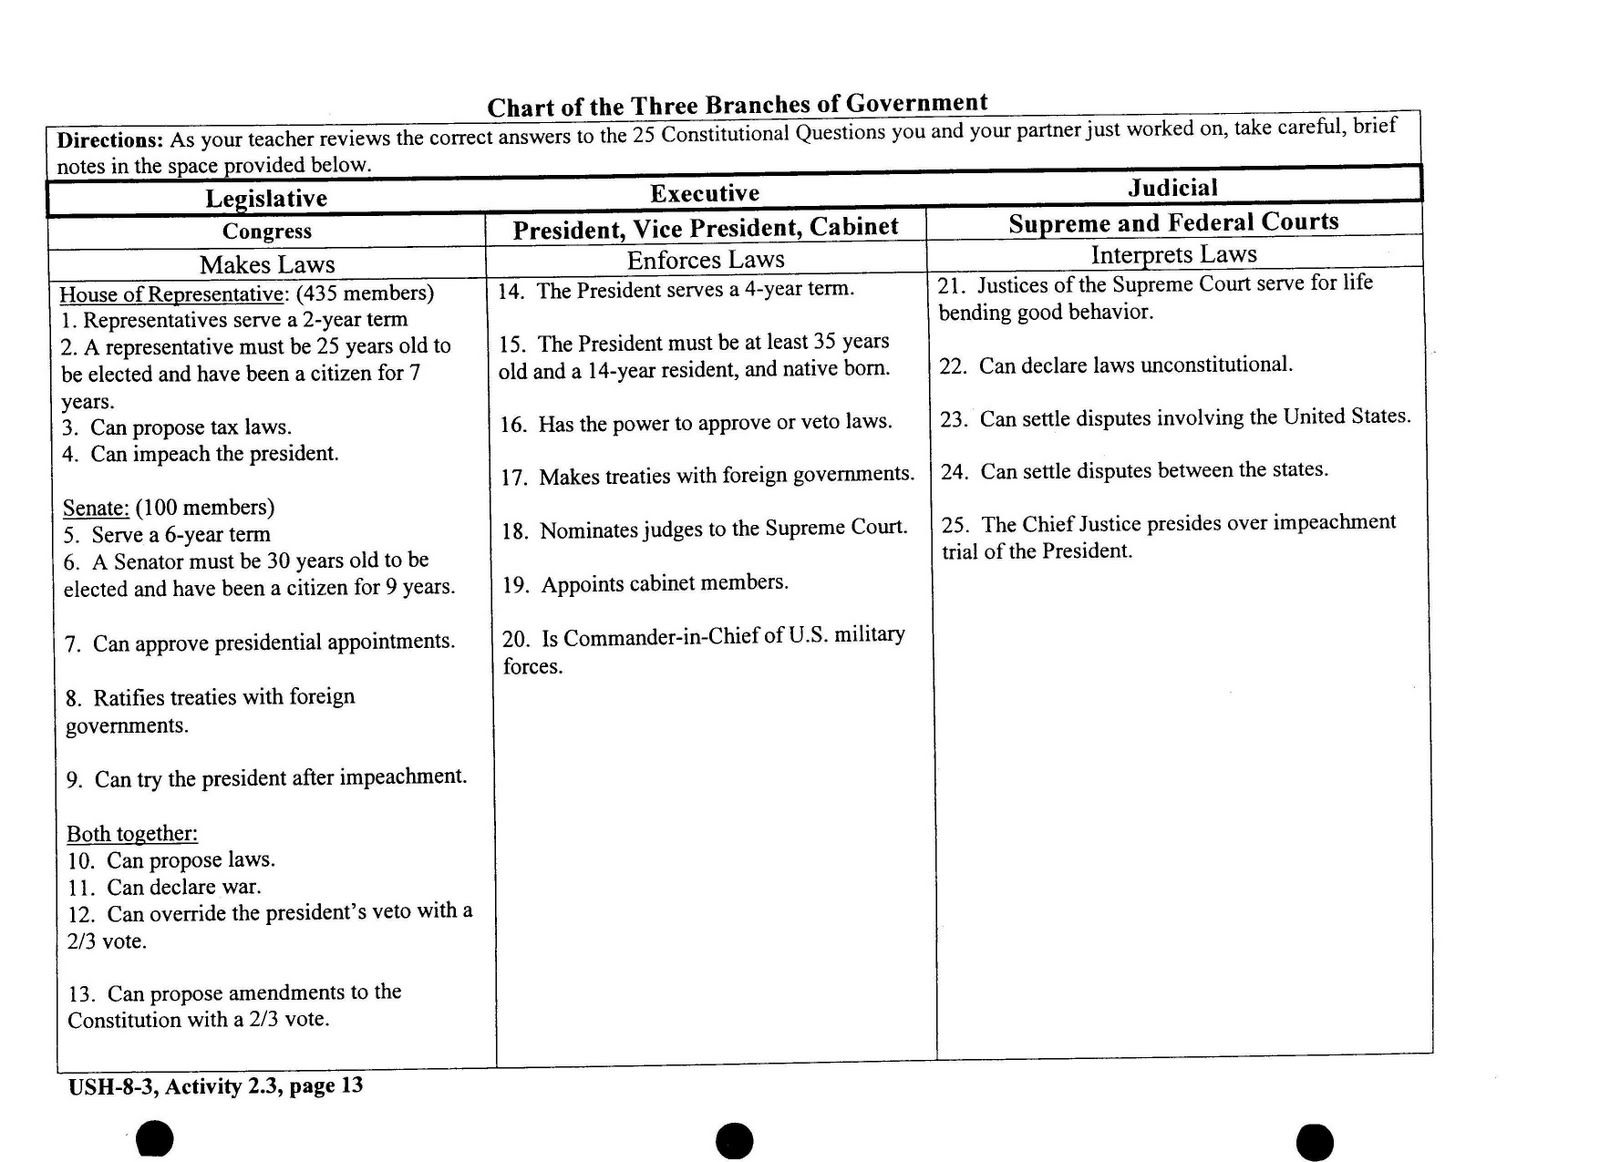 worksheet Branches Of Government Worksheets pictures government worksheets pigmu 4th grade social studies on studies